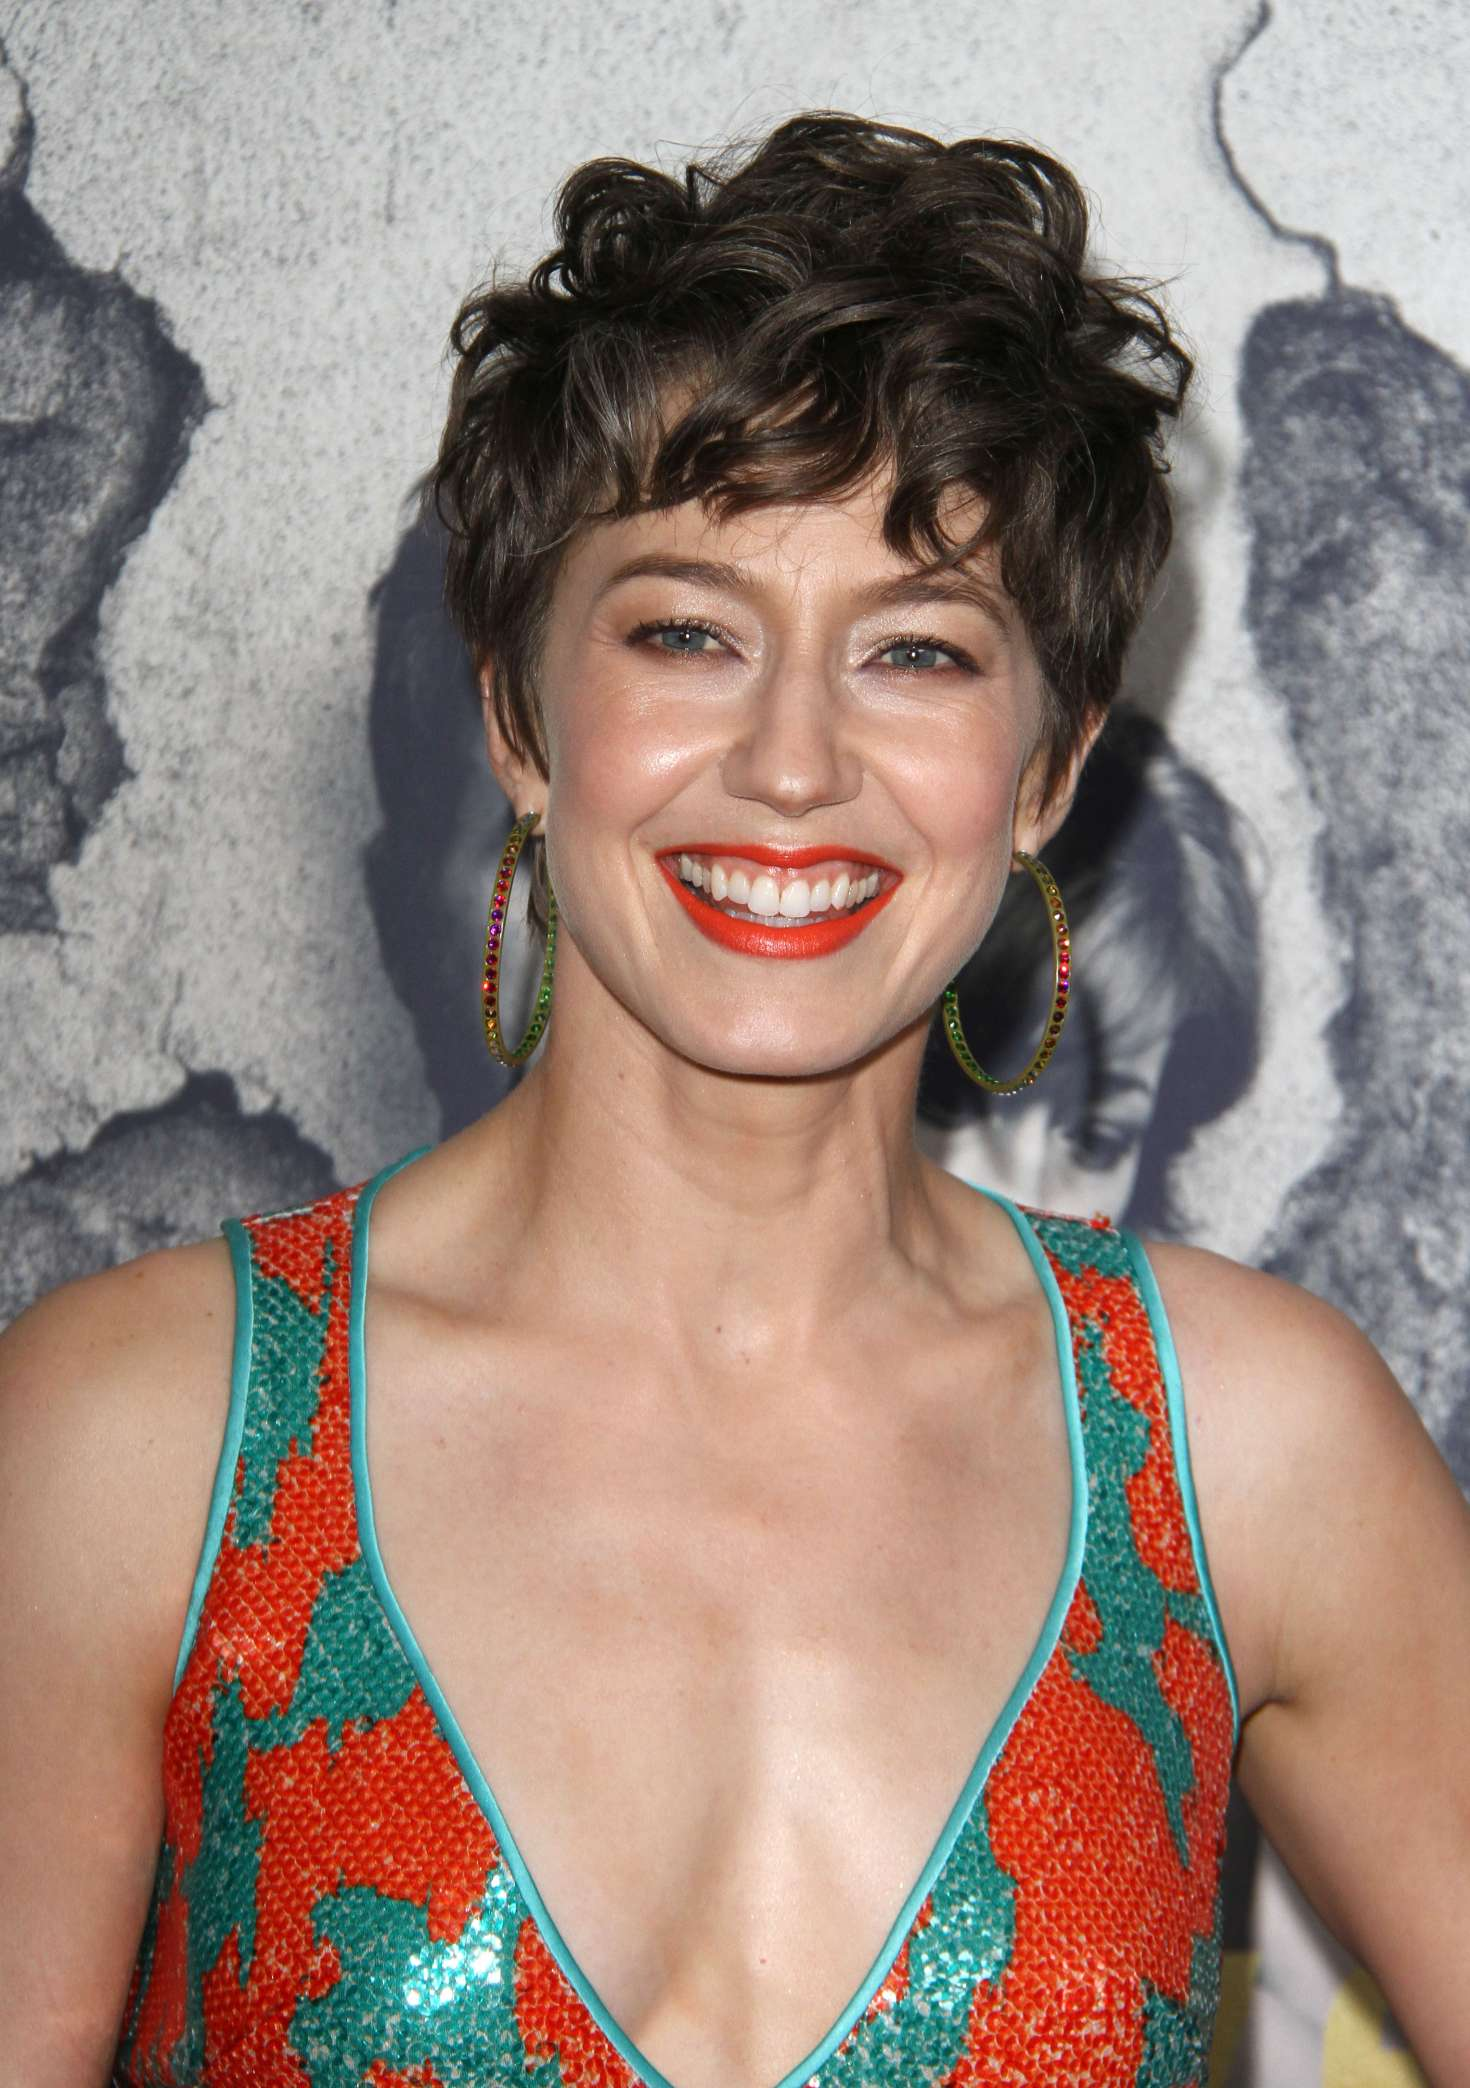 Carrie Coon nude (68 fotos), images Topless, Twitter, underwear 2018